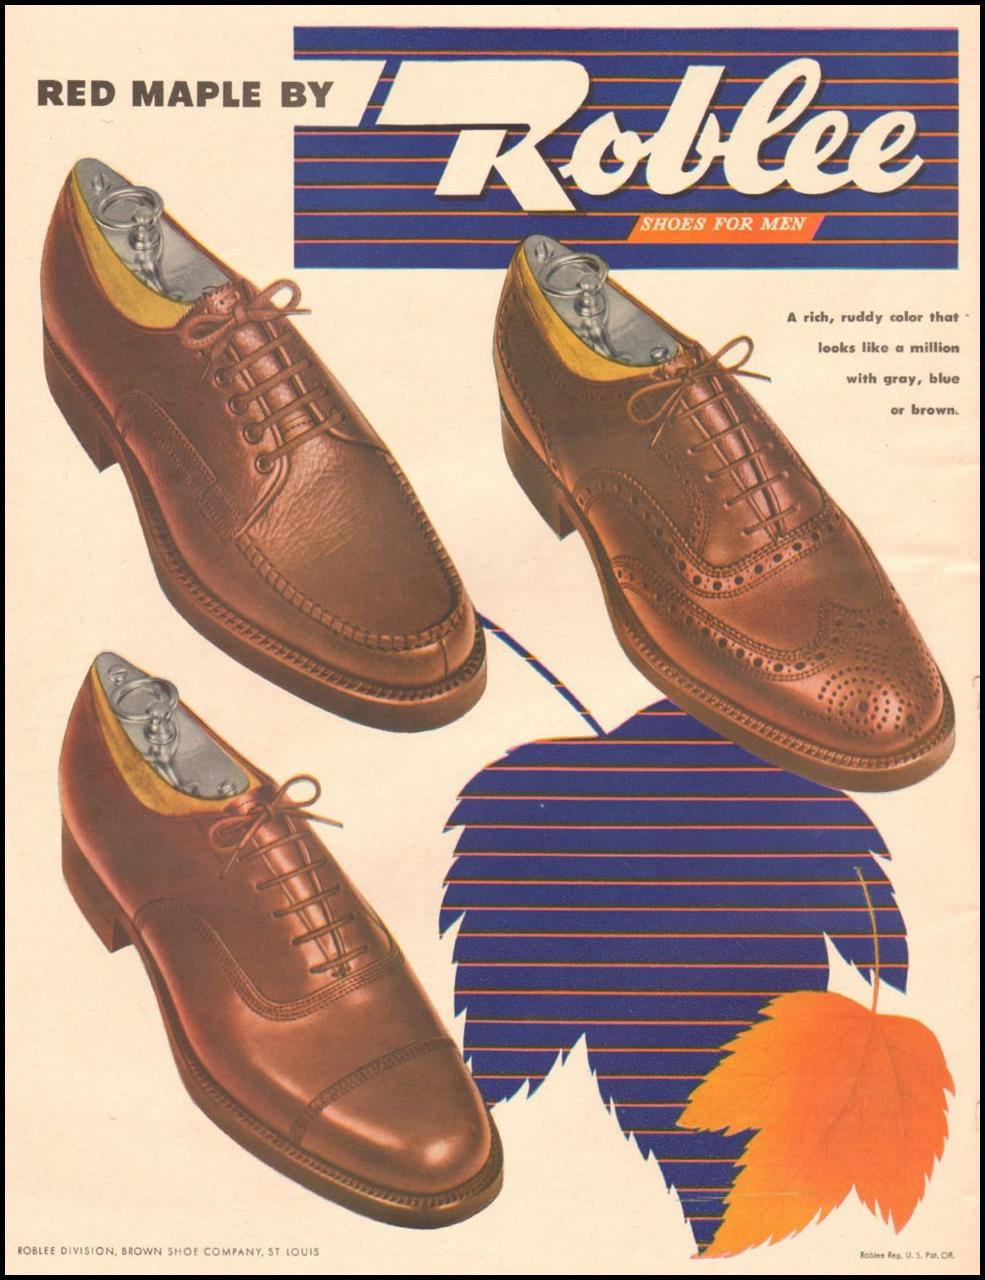 ROBLEE SHOES FOR MEN LIFE 11/25/1946